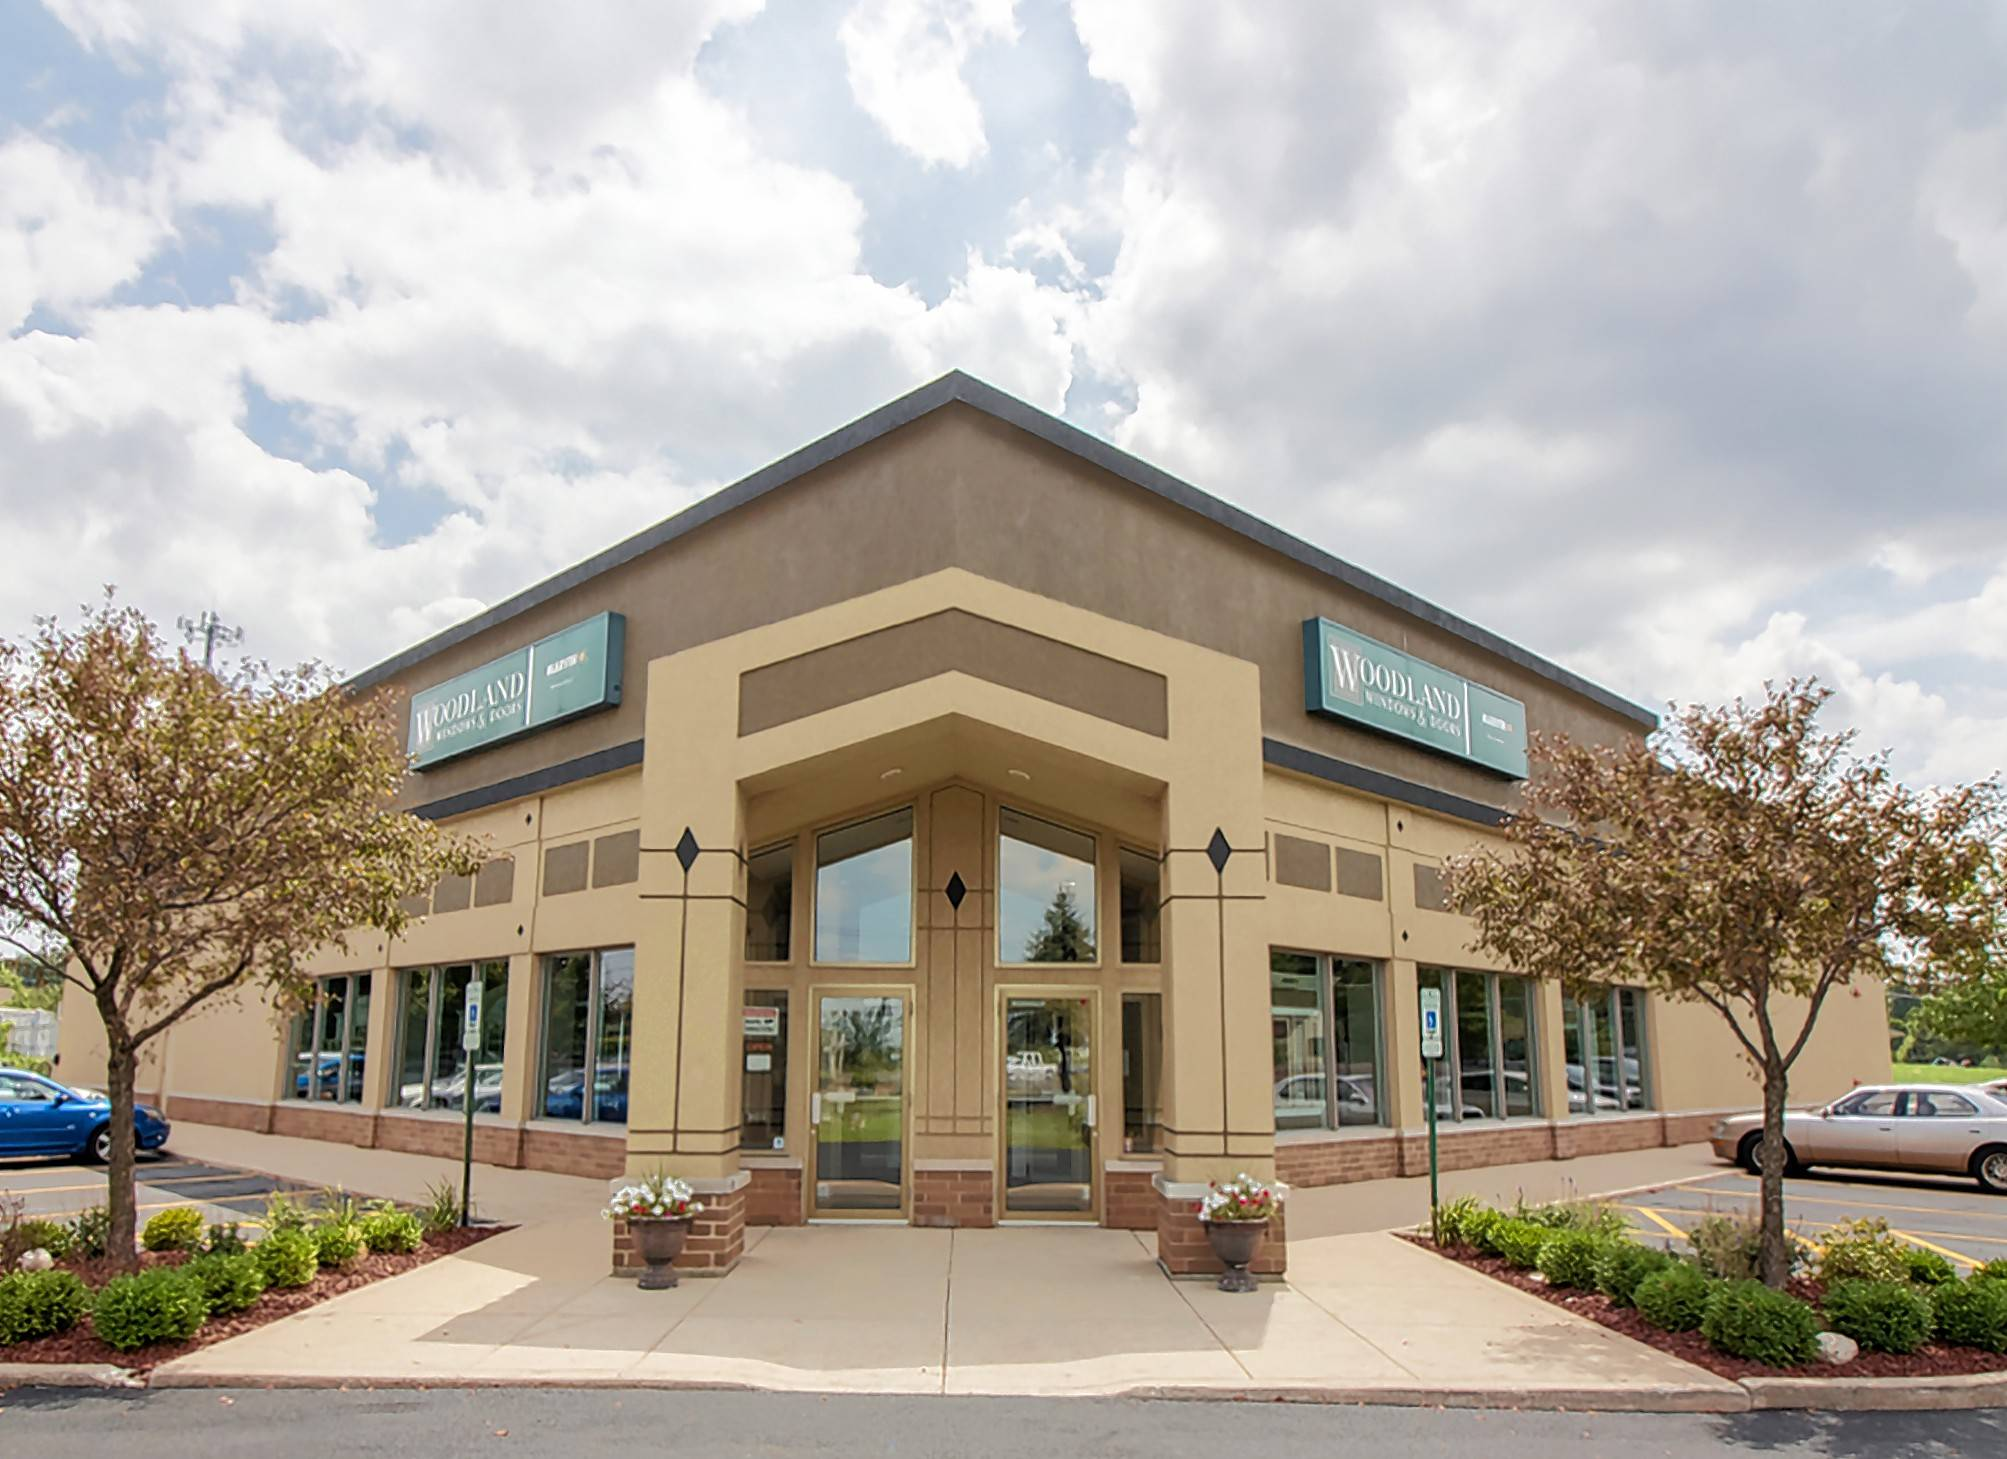 Woodland Windows and Doors is celebrating its 50th anniversary this year. The company opened a new, larger showroom in Roselle in the 1990s.